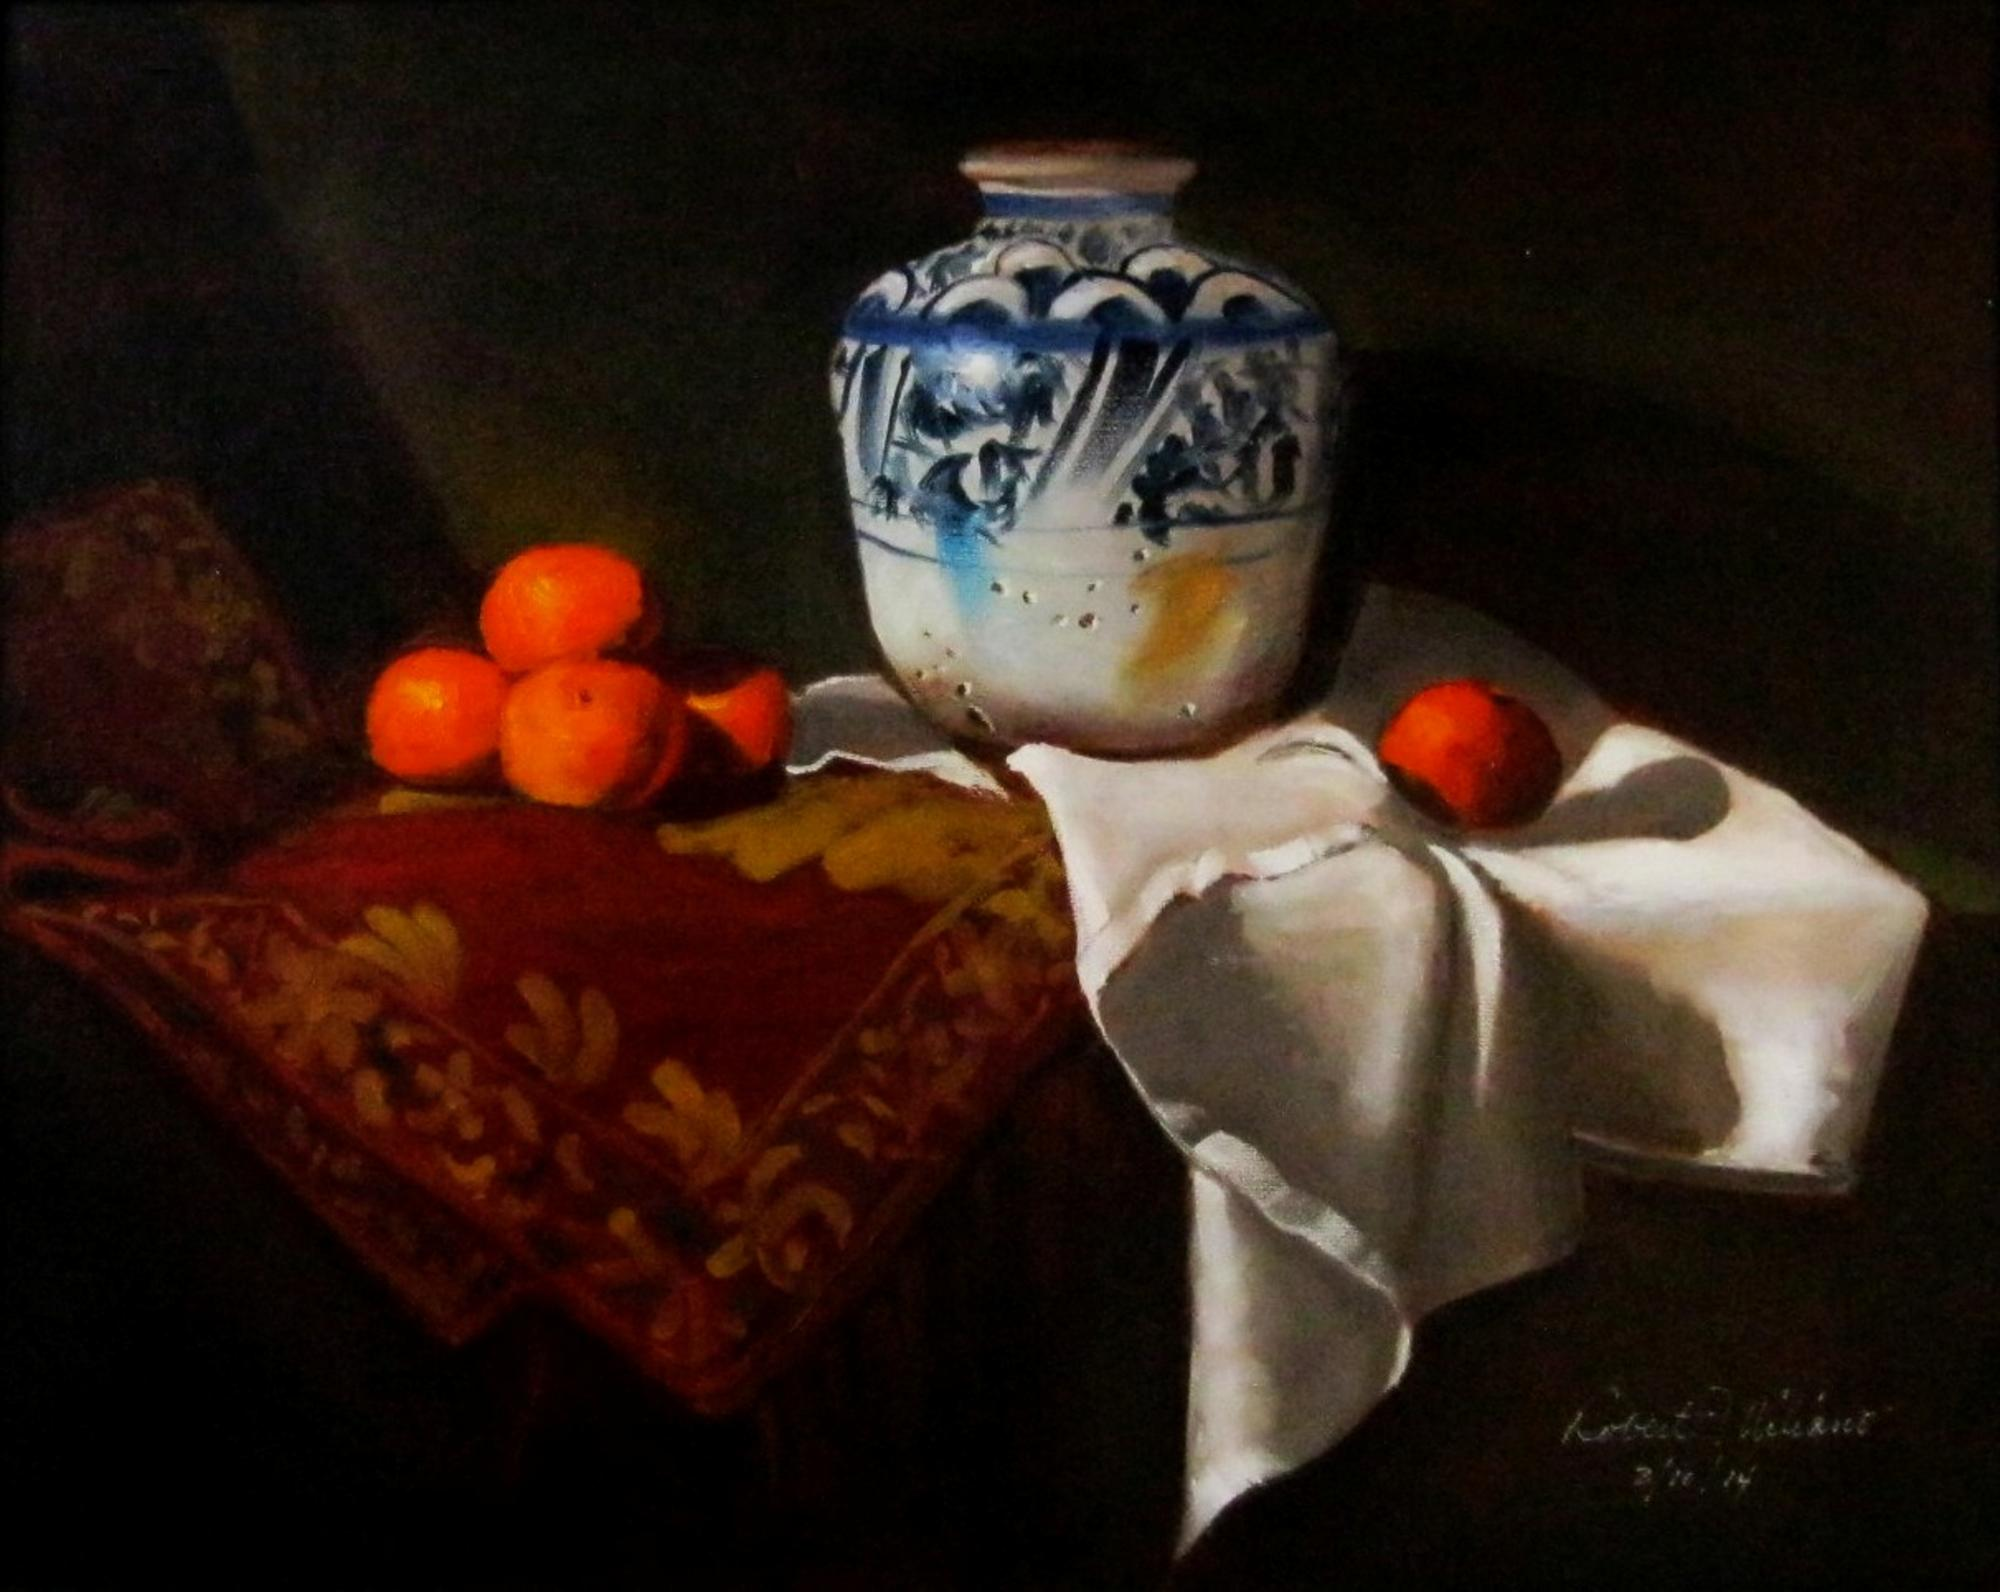 Blue White Vase with Oranges - Roberto Miliano.jpg